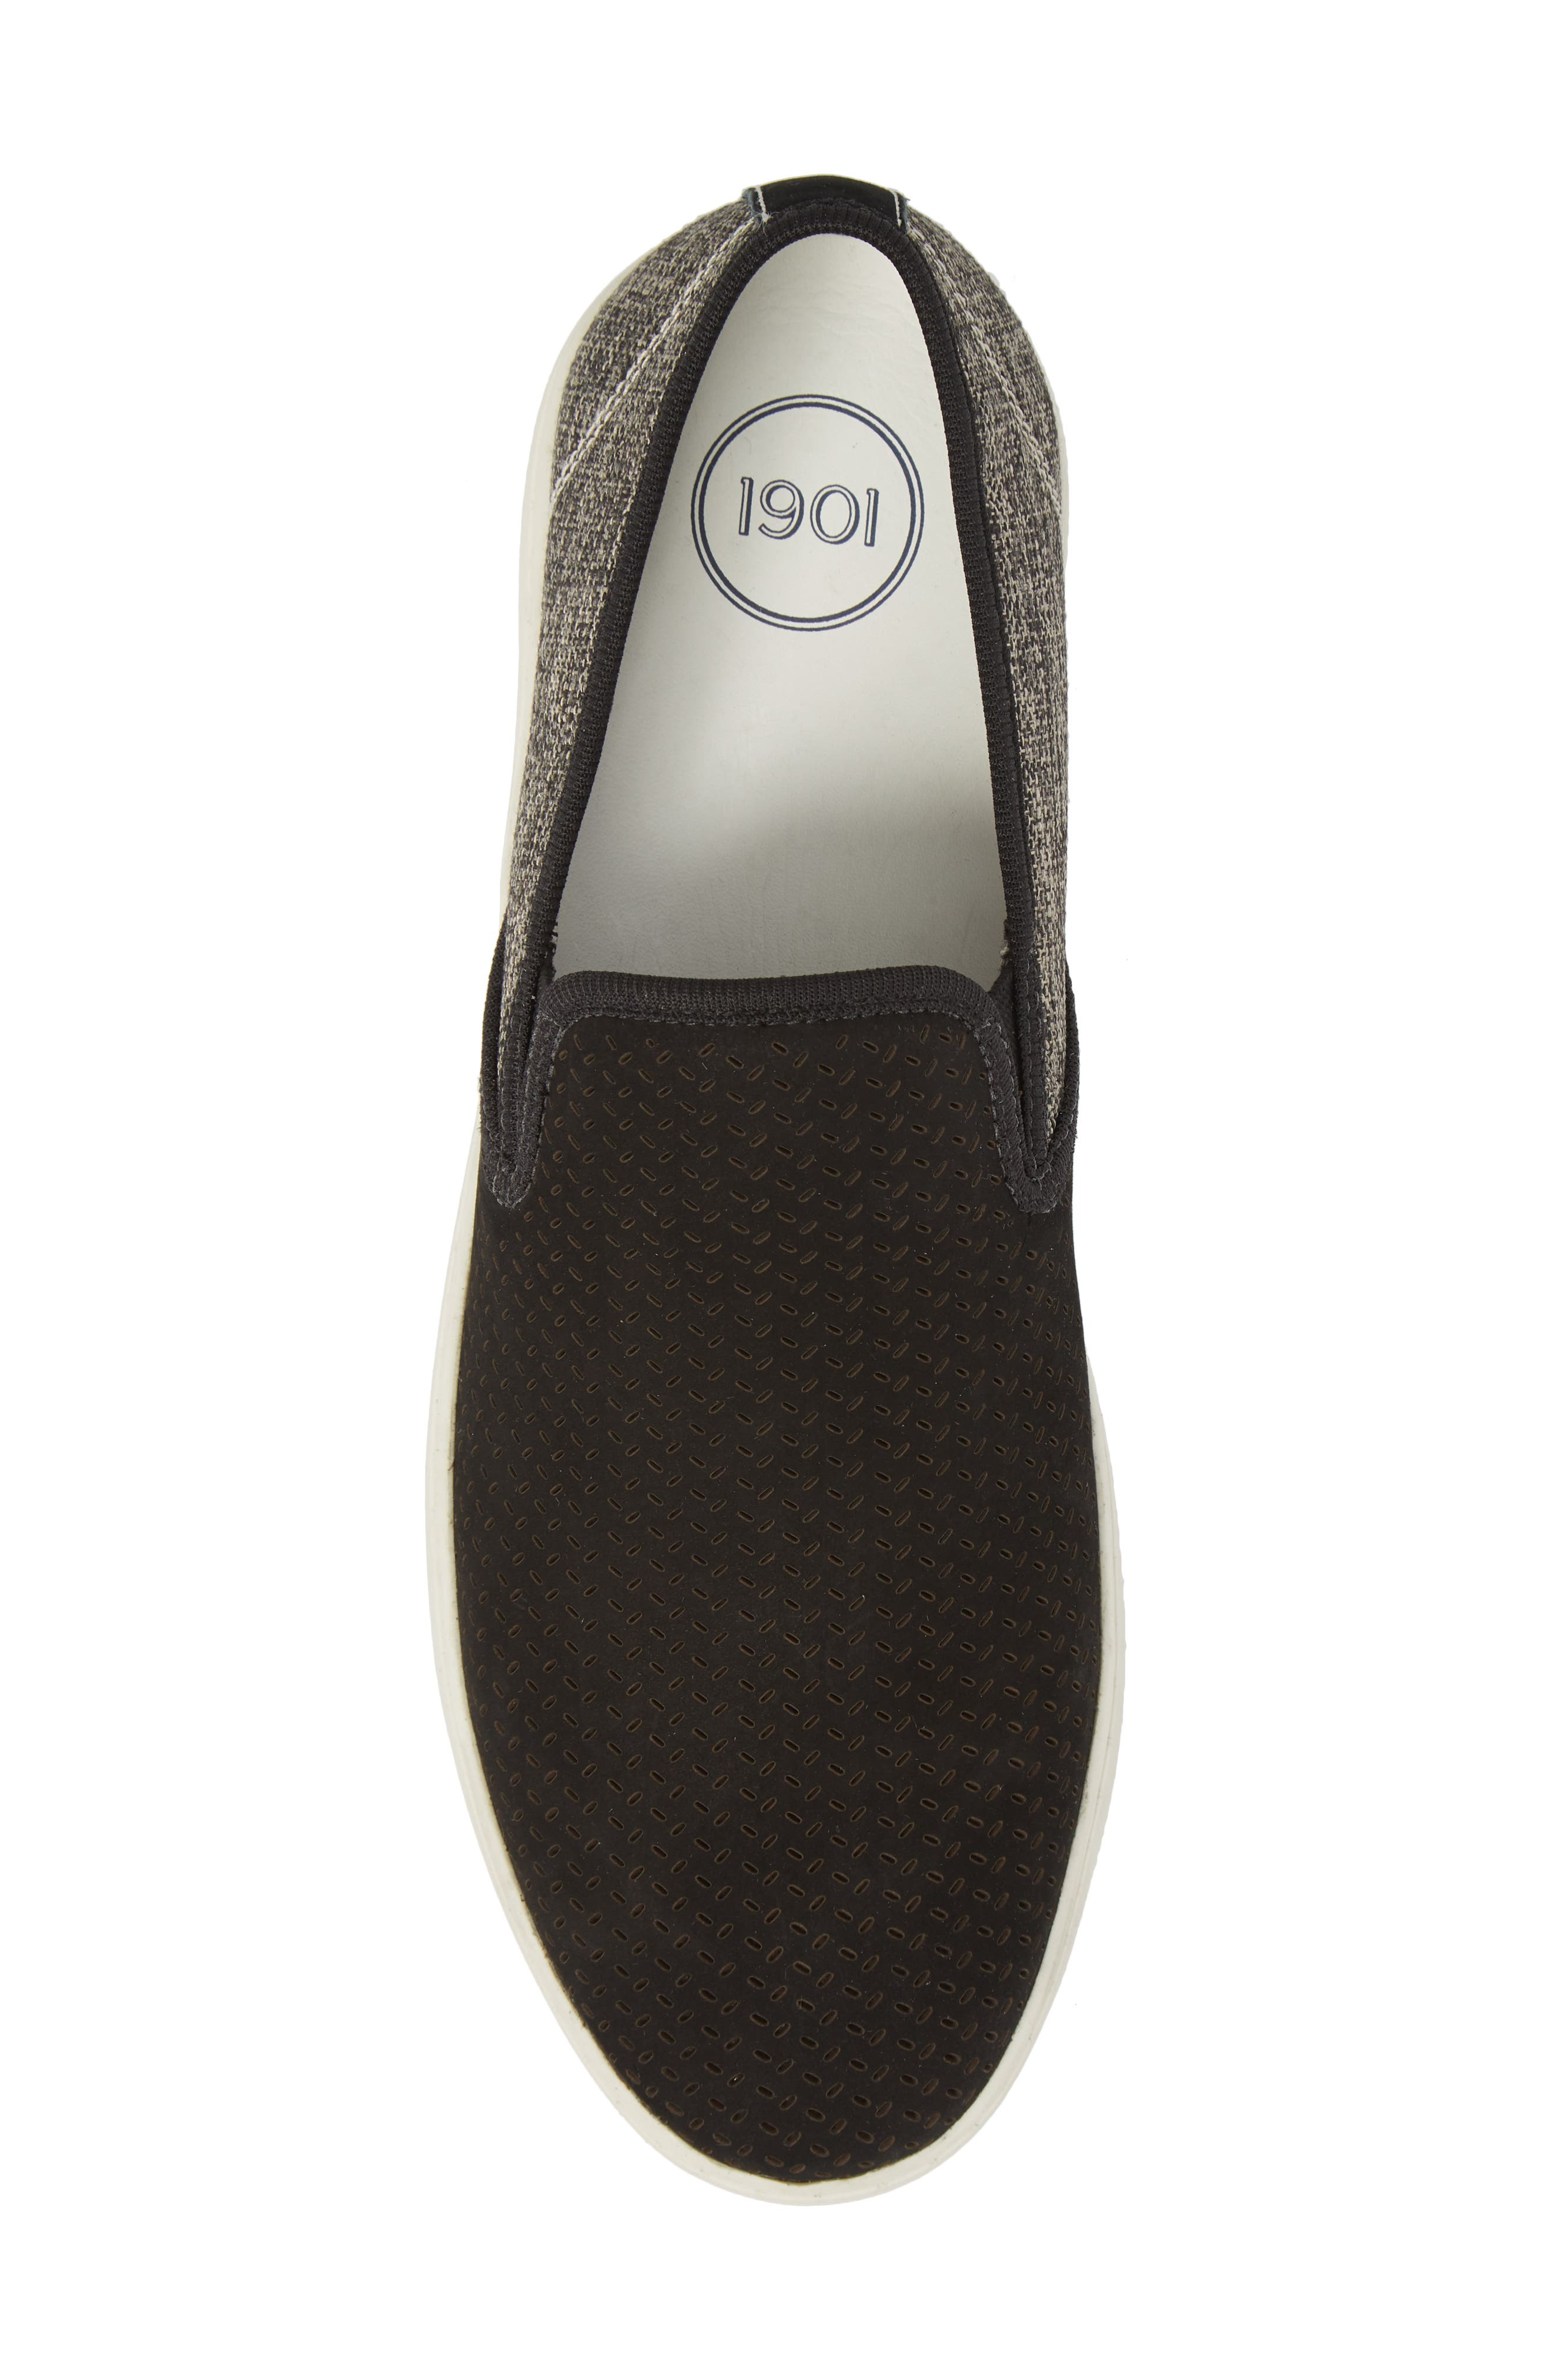 Malibu Perforated Loafer,                             Alternate thumbnail 5, color,                             BLACK LEATHER / GREY CANVAS